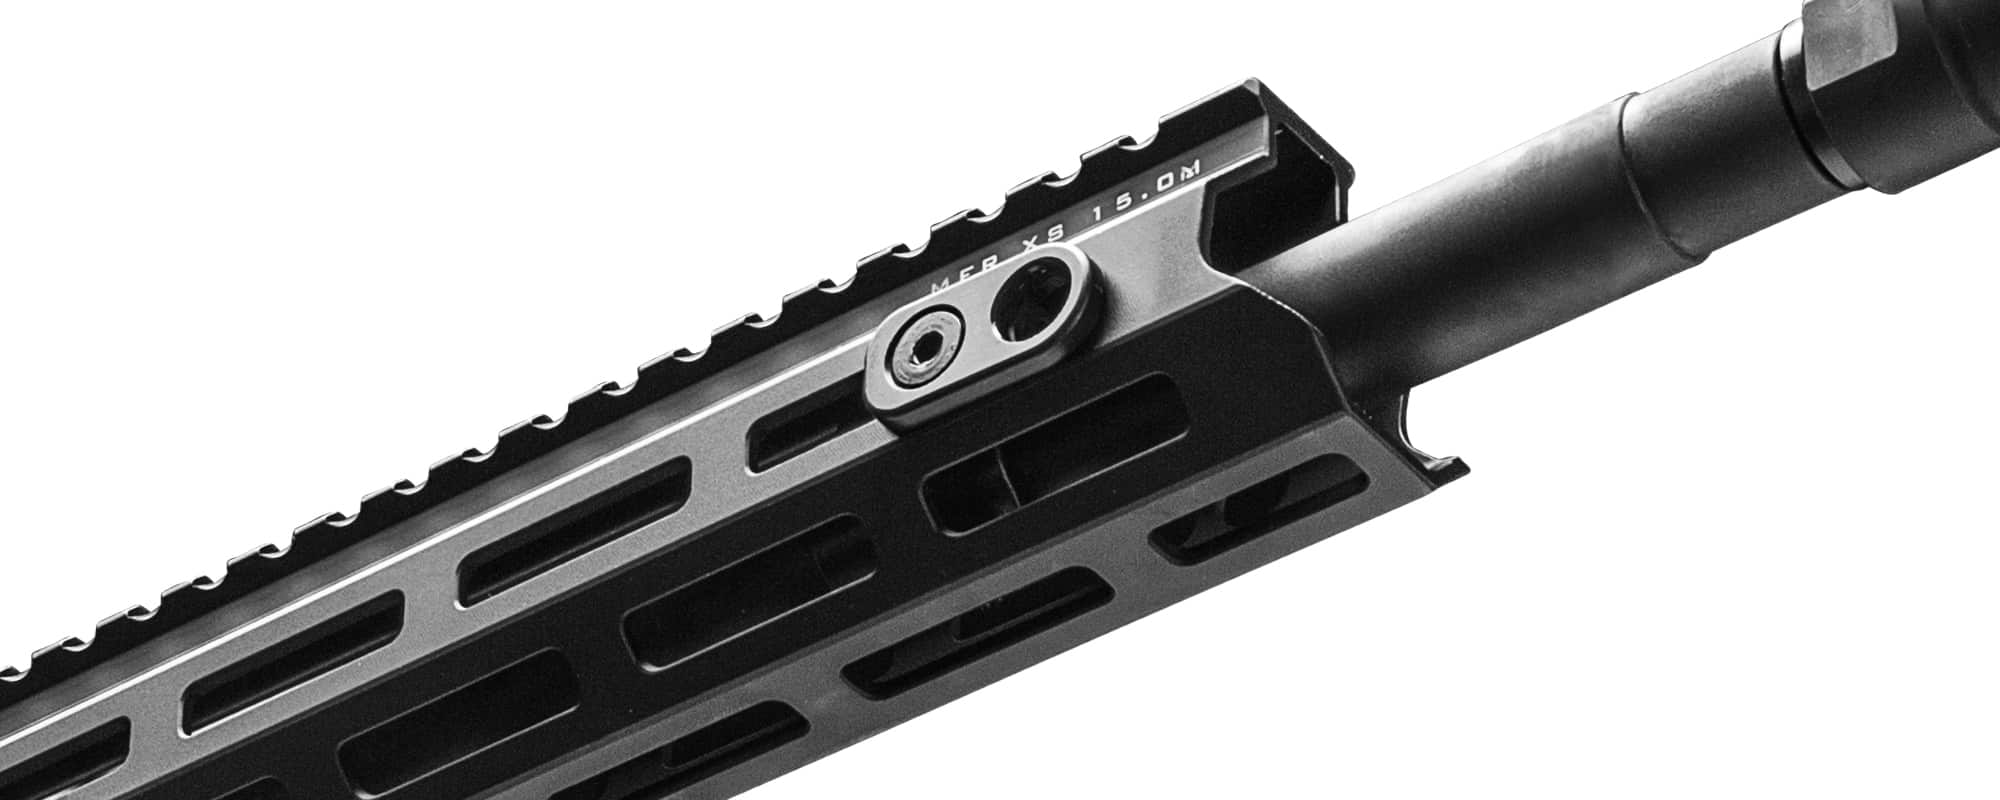 DDV7181-3-Daniel Defense DDM4V7-Pro Black 18 Barrel. Semi-Auto. Cal. 5.56 - DDV7181